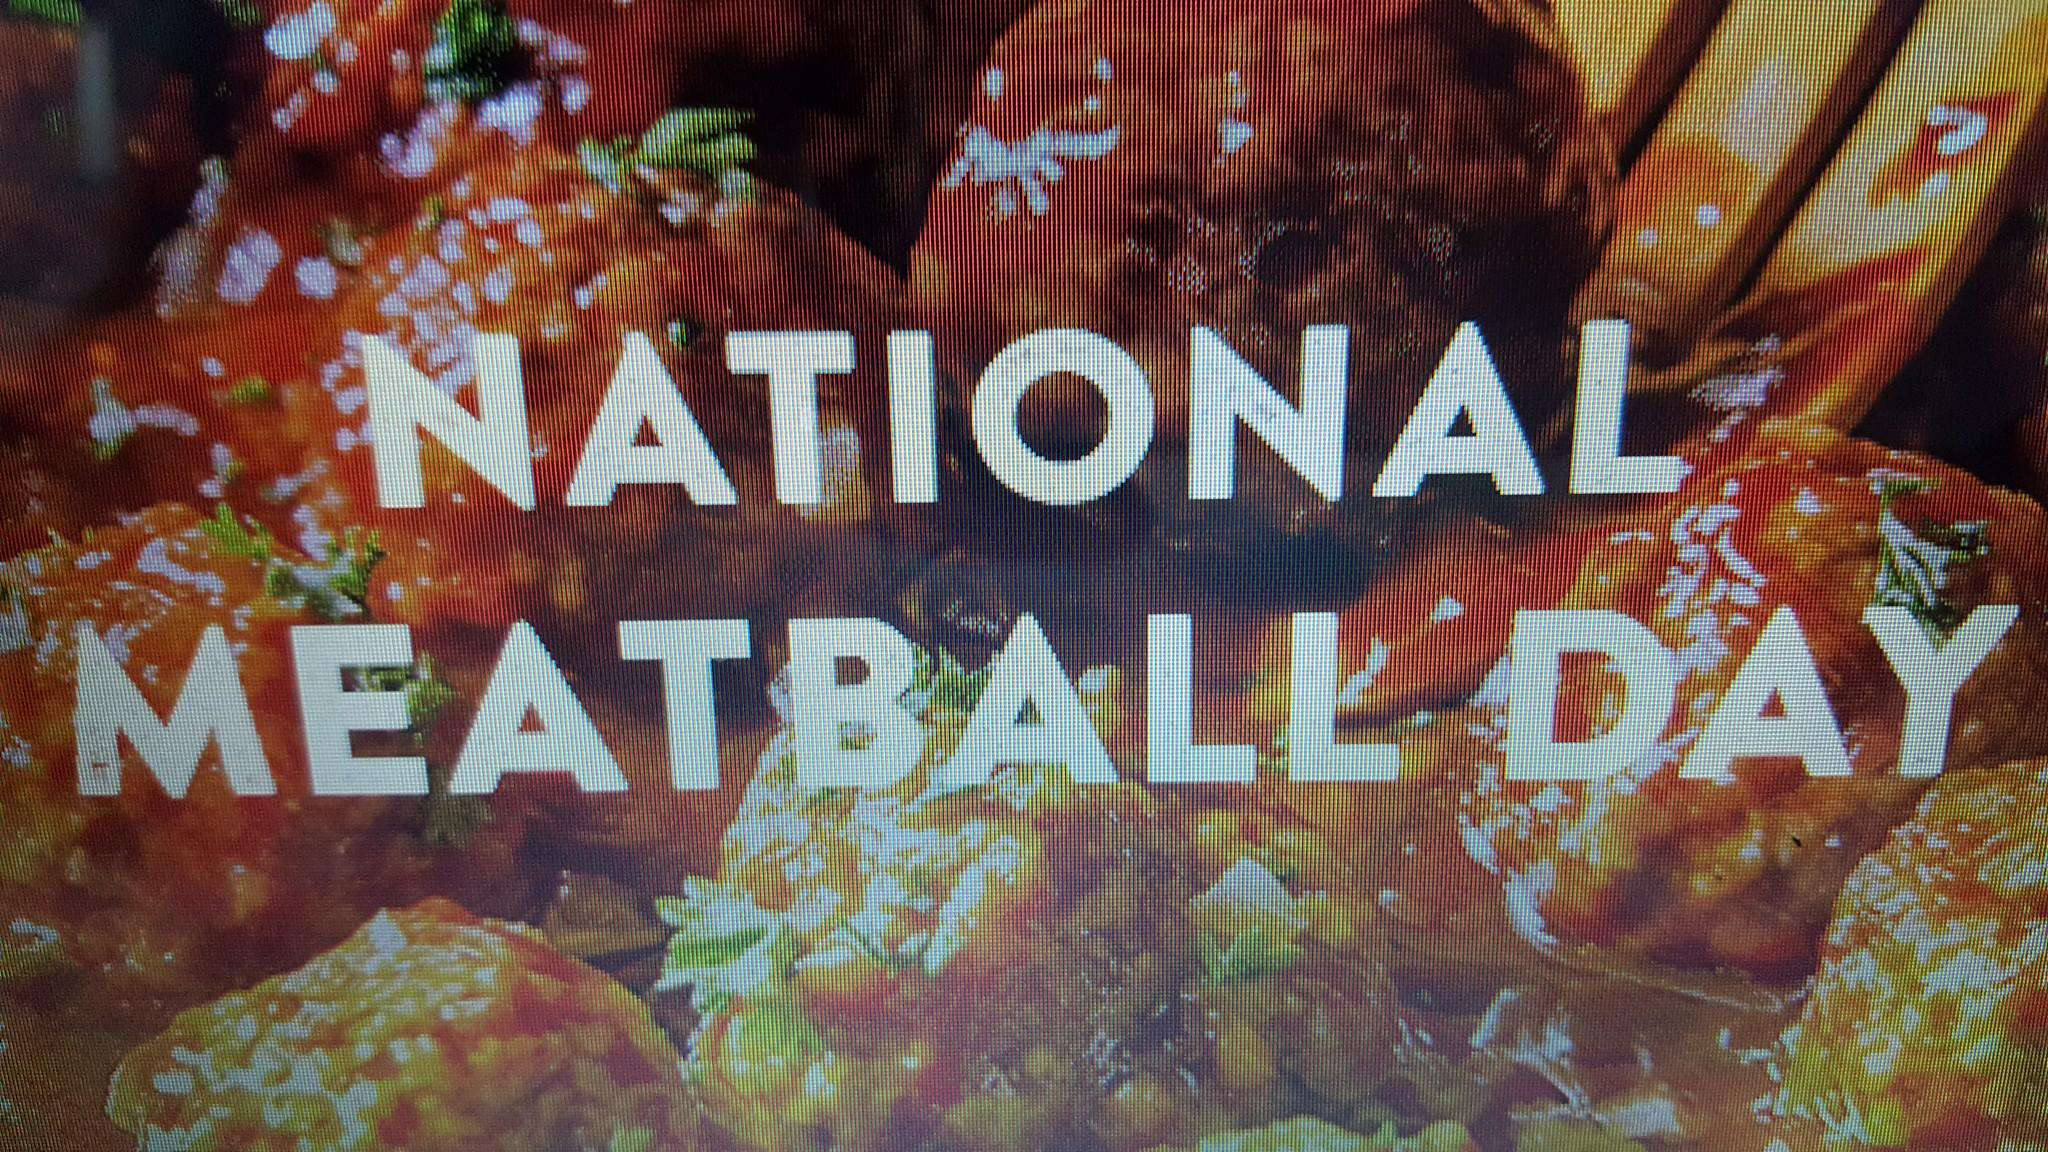 National Meatball Day Wishes for Instagram